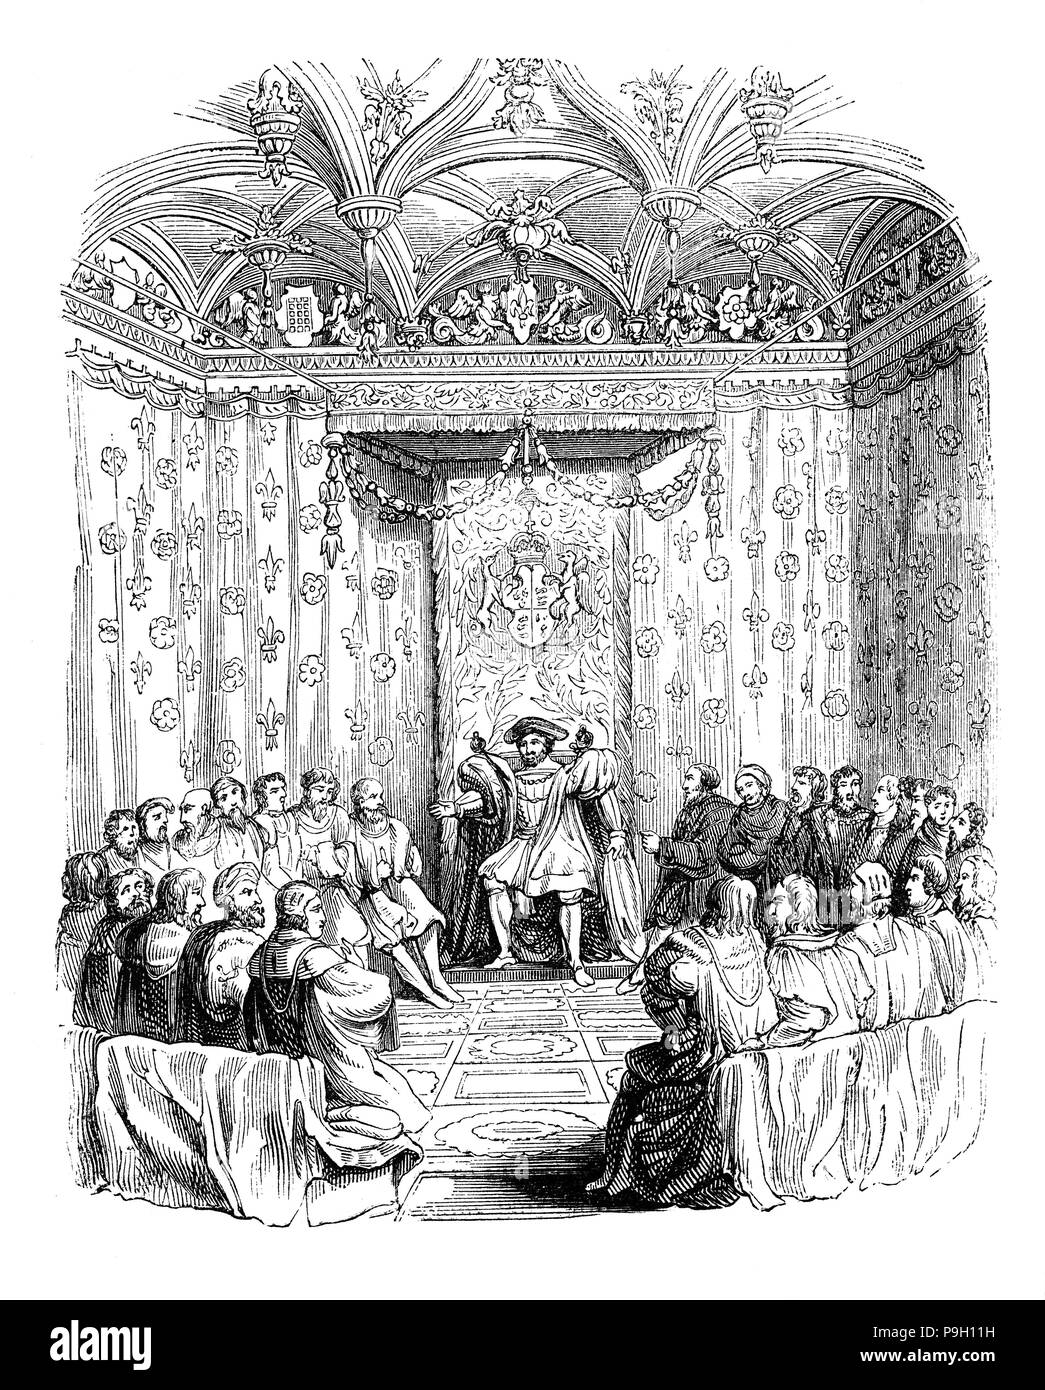 King Henry VIII at a meeting of the Privy Council, a group of men who were advisers to the King. It included a variety of men including those from the religious sector to very important state offices. After 1540 the 19 members of the Privy Council worked together as a board having letters and warrants signed collectively by them. They sat virtually every day and within it Court and State became as one, for the Privy Council met almost exclusively at Court after the reconstructions of 1536-7 and 1540. It also sat judicially as the Court of Star Chamber on Wednesdays and Fridays. - Stock Image